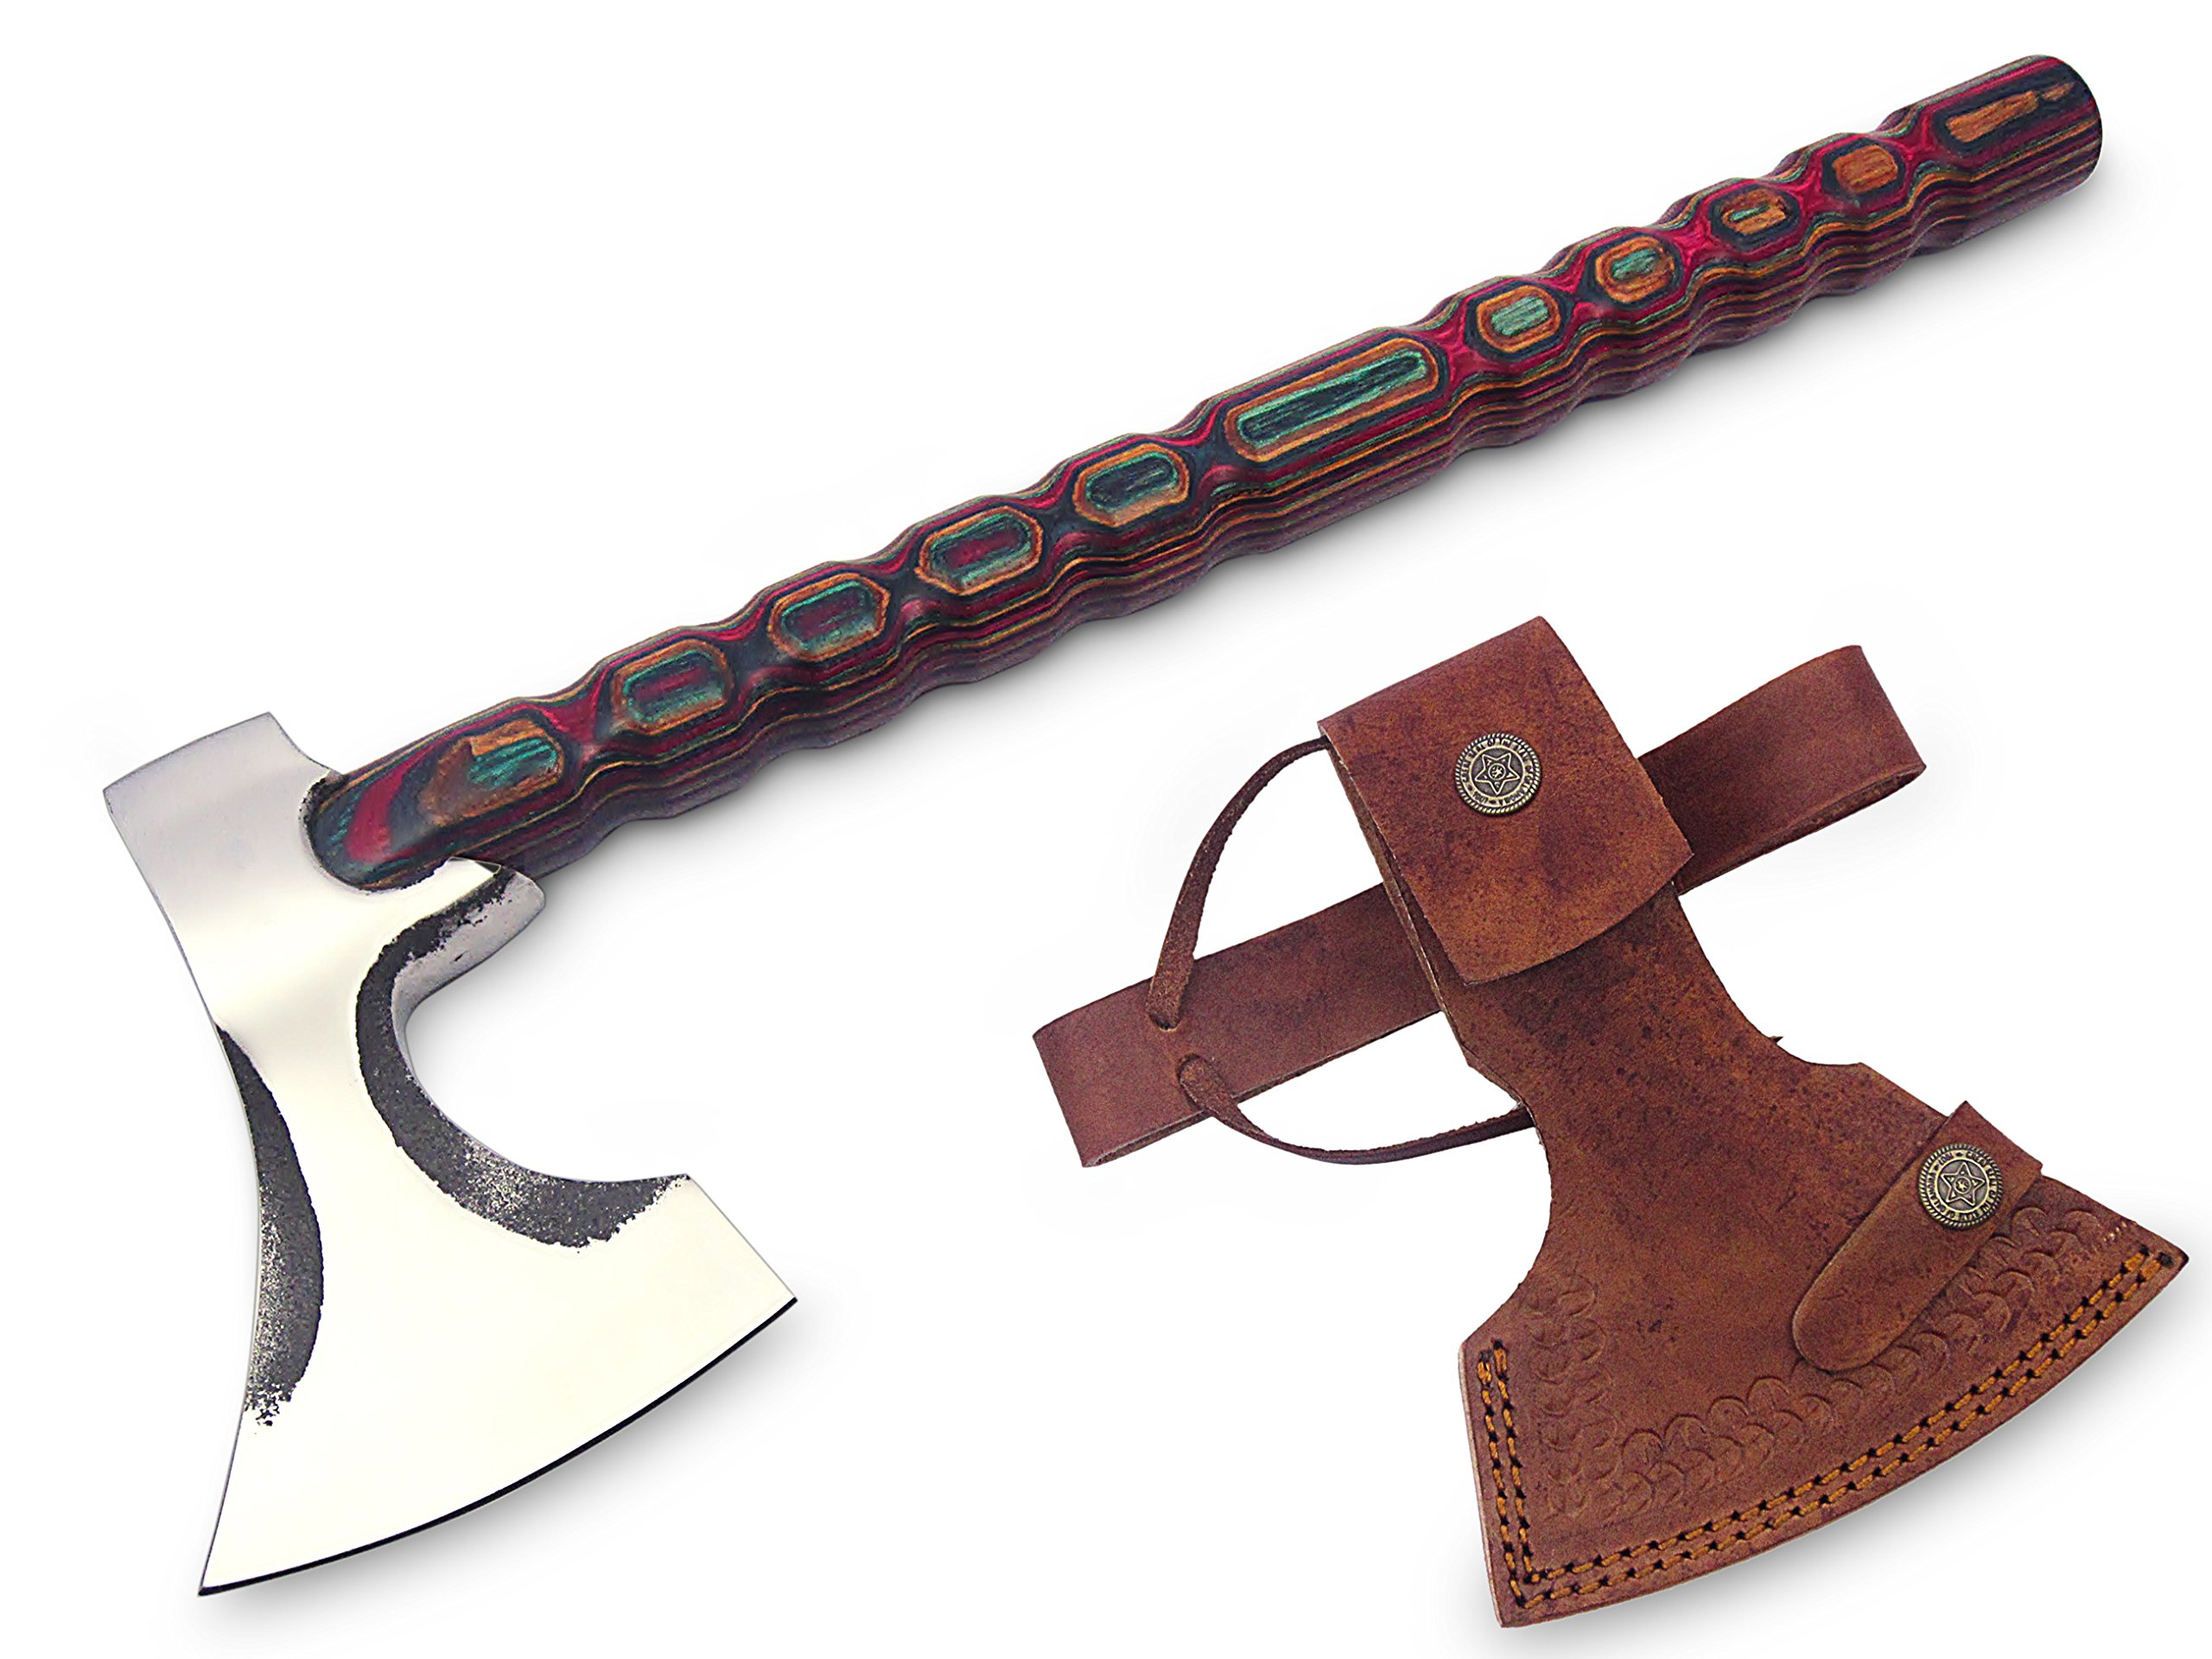 MDM NEW HATCHET TOMAHAWK VIKING AXE FULLU FUNCTIONAL COMBAT BUCHCARFT AXE WITH DIAMOND WOOD HANDLE